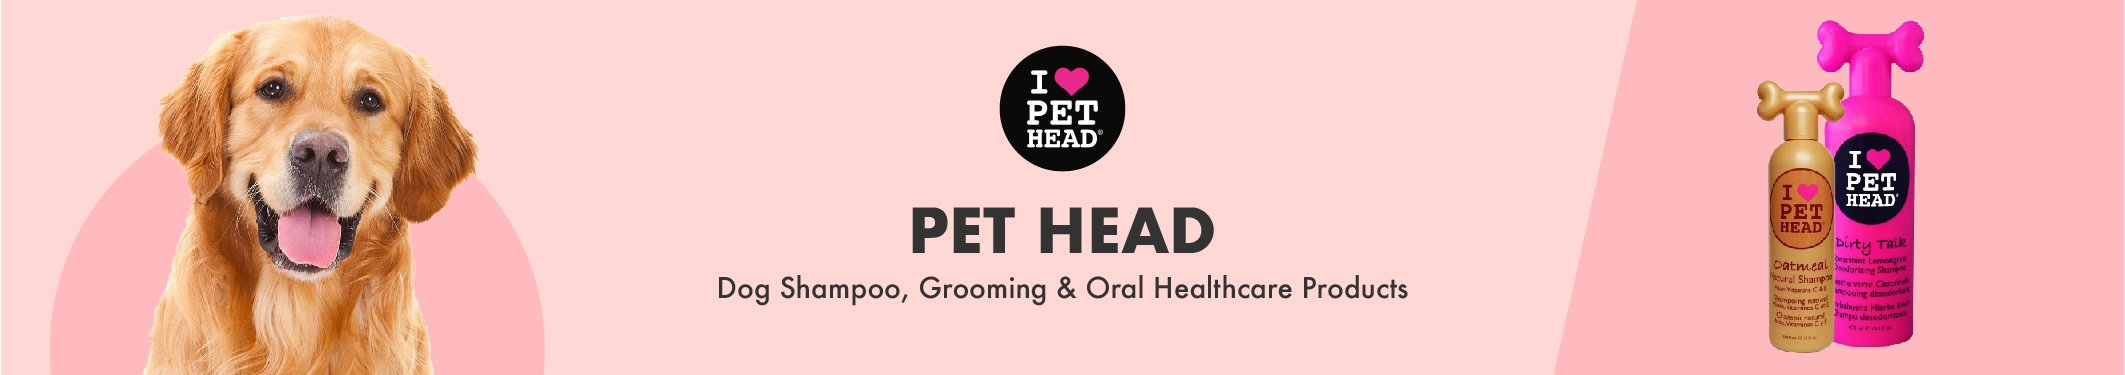 Pet Head Dog Shampoo, Grooming and Oral Healthcare Products